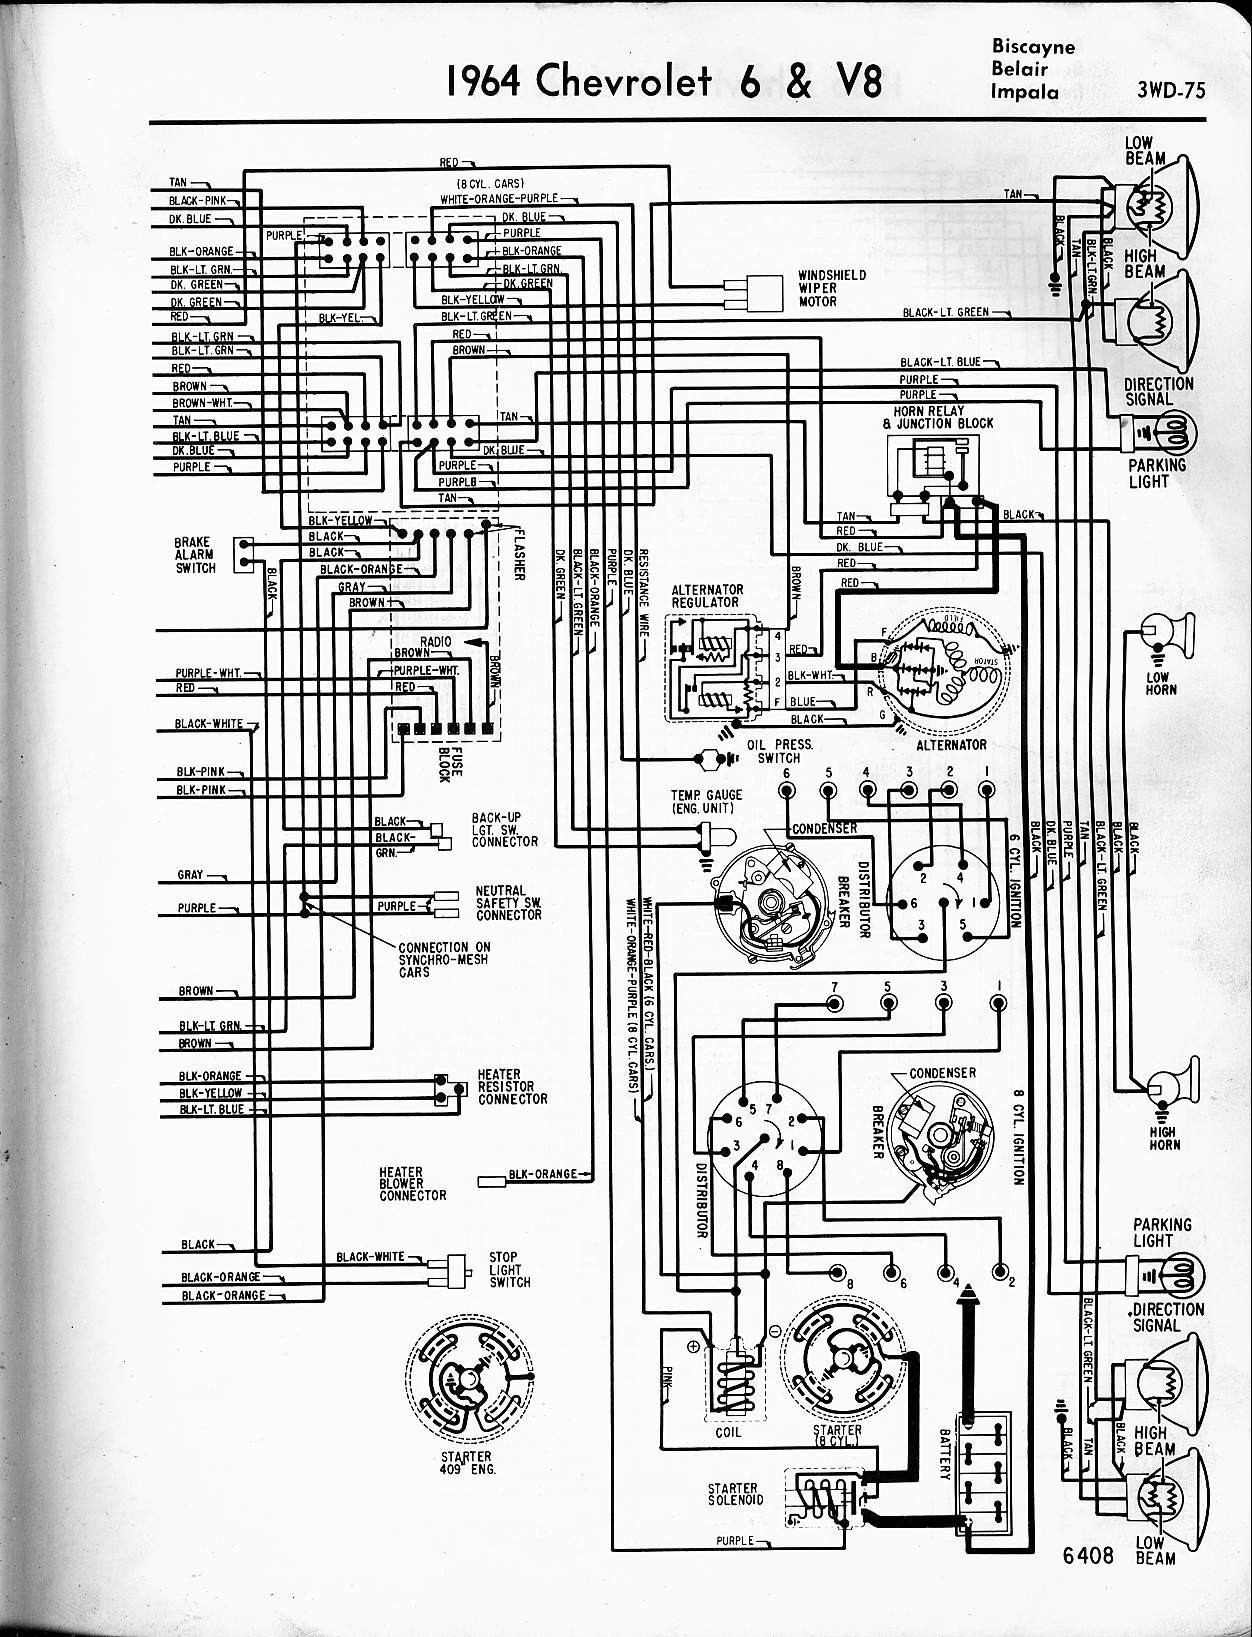 1970 impala fuse box aio wiring diagrams. Black Bedroom Furniture Sets. Home Design Ideas